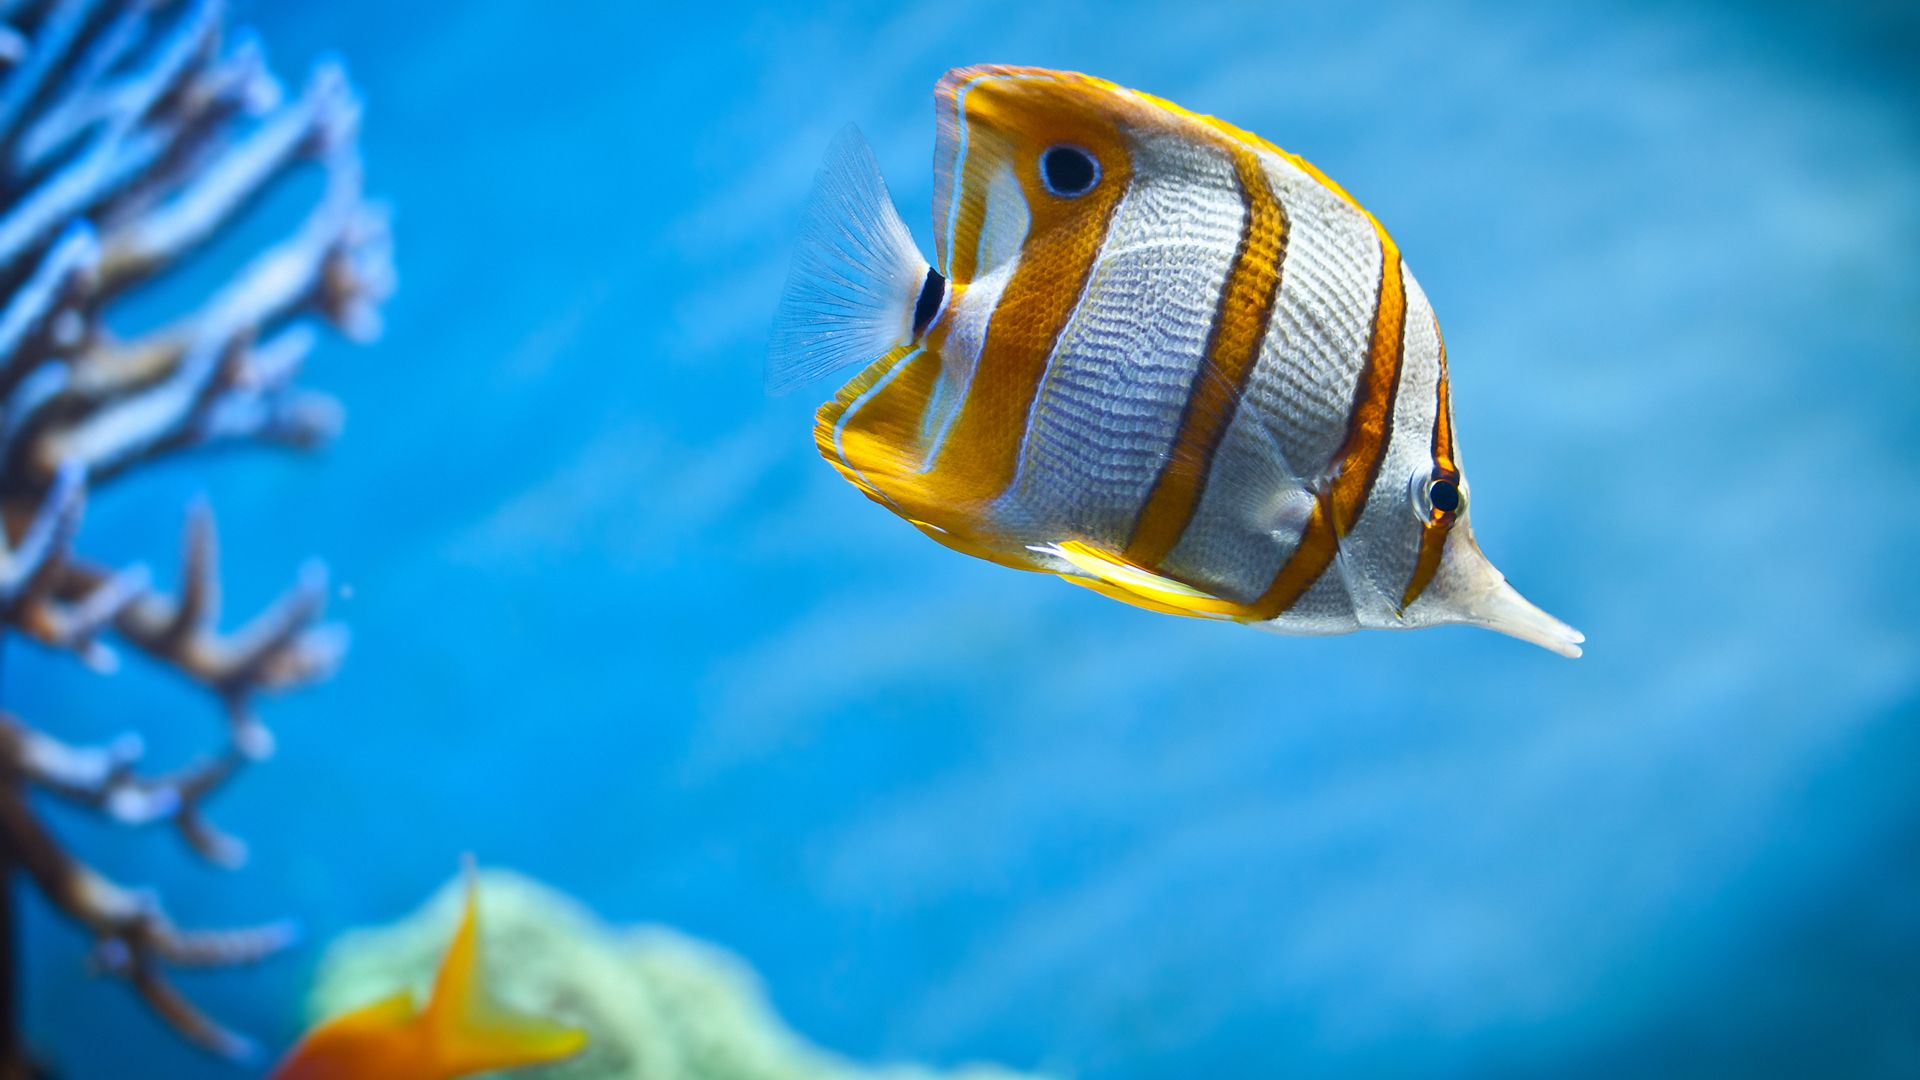 Fish Wallpaper Find best latest Fish Wallpaper for your PC desktop